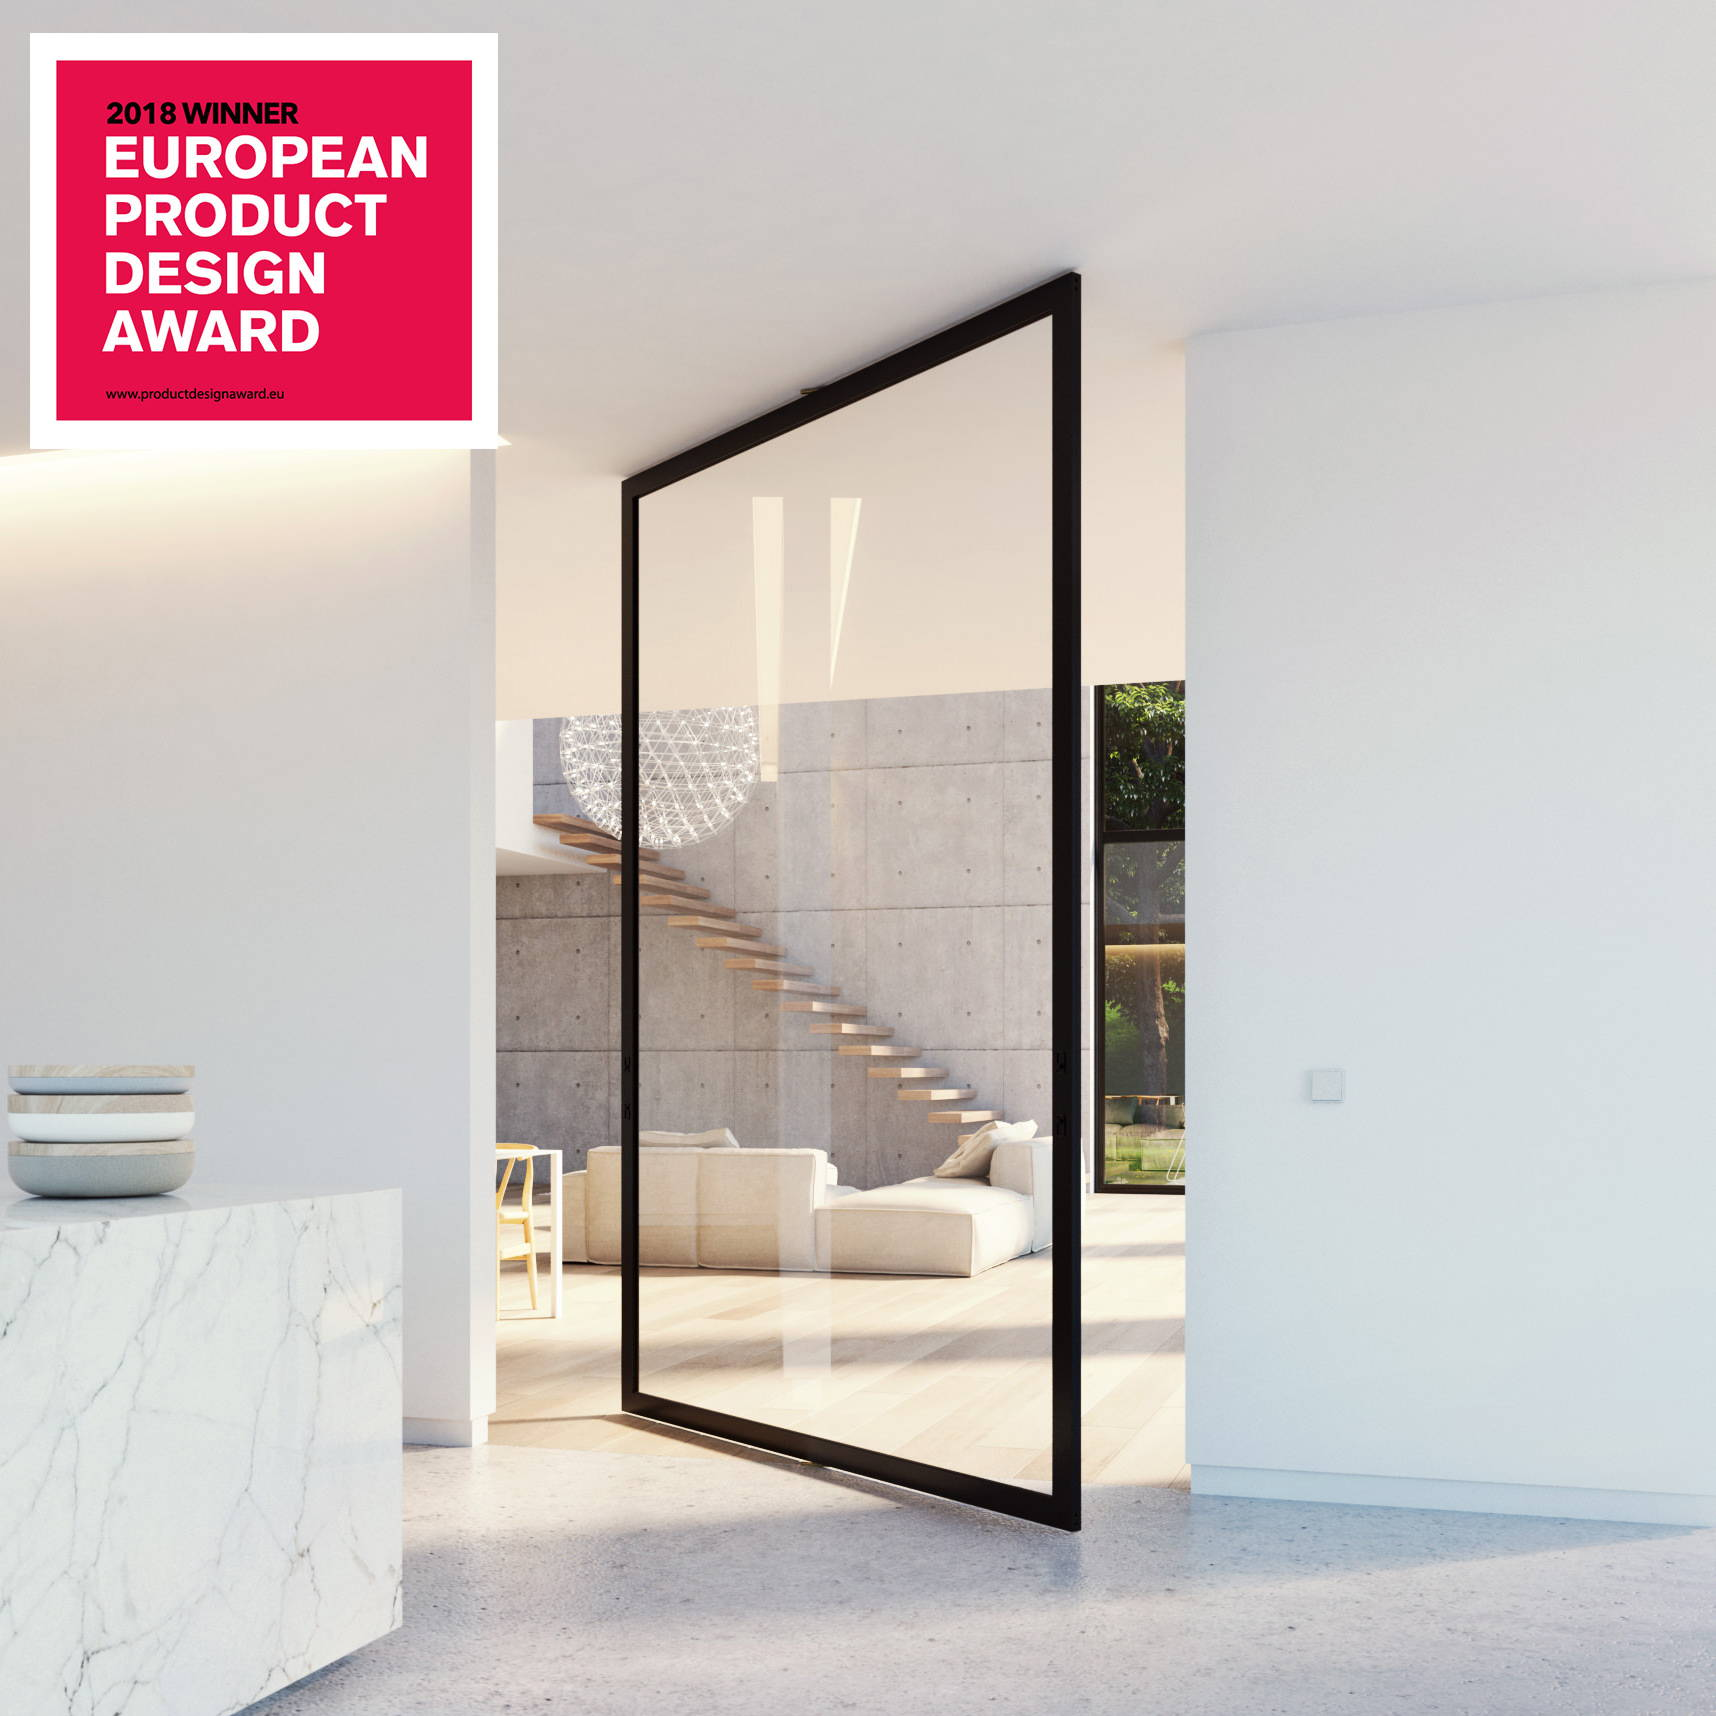 Portapivot 6530 European product design award 2018